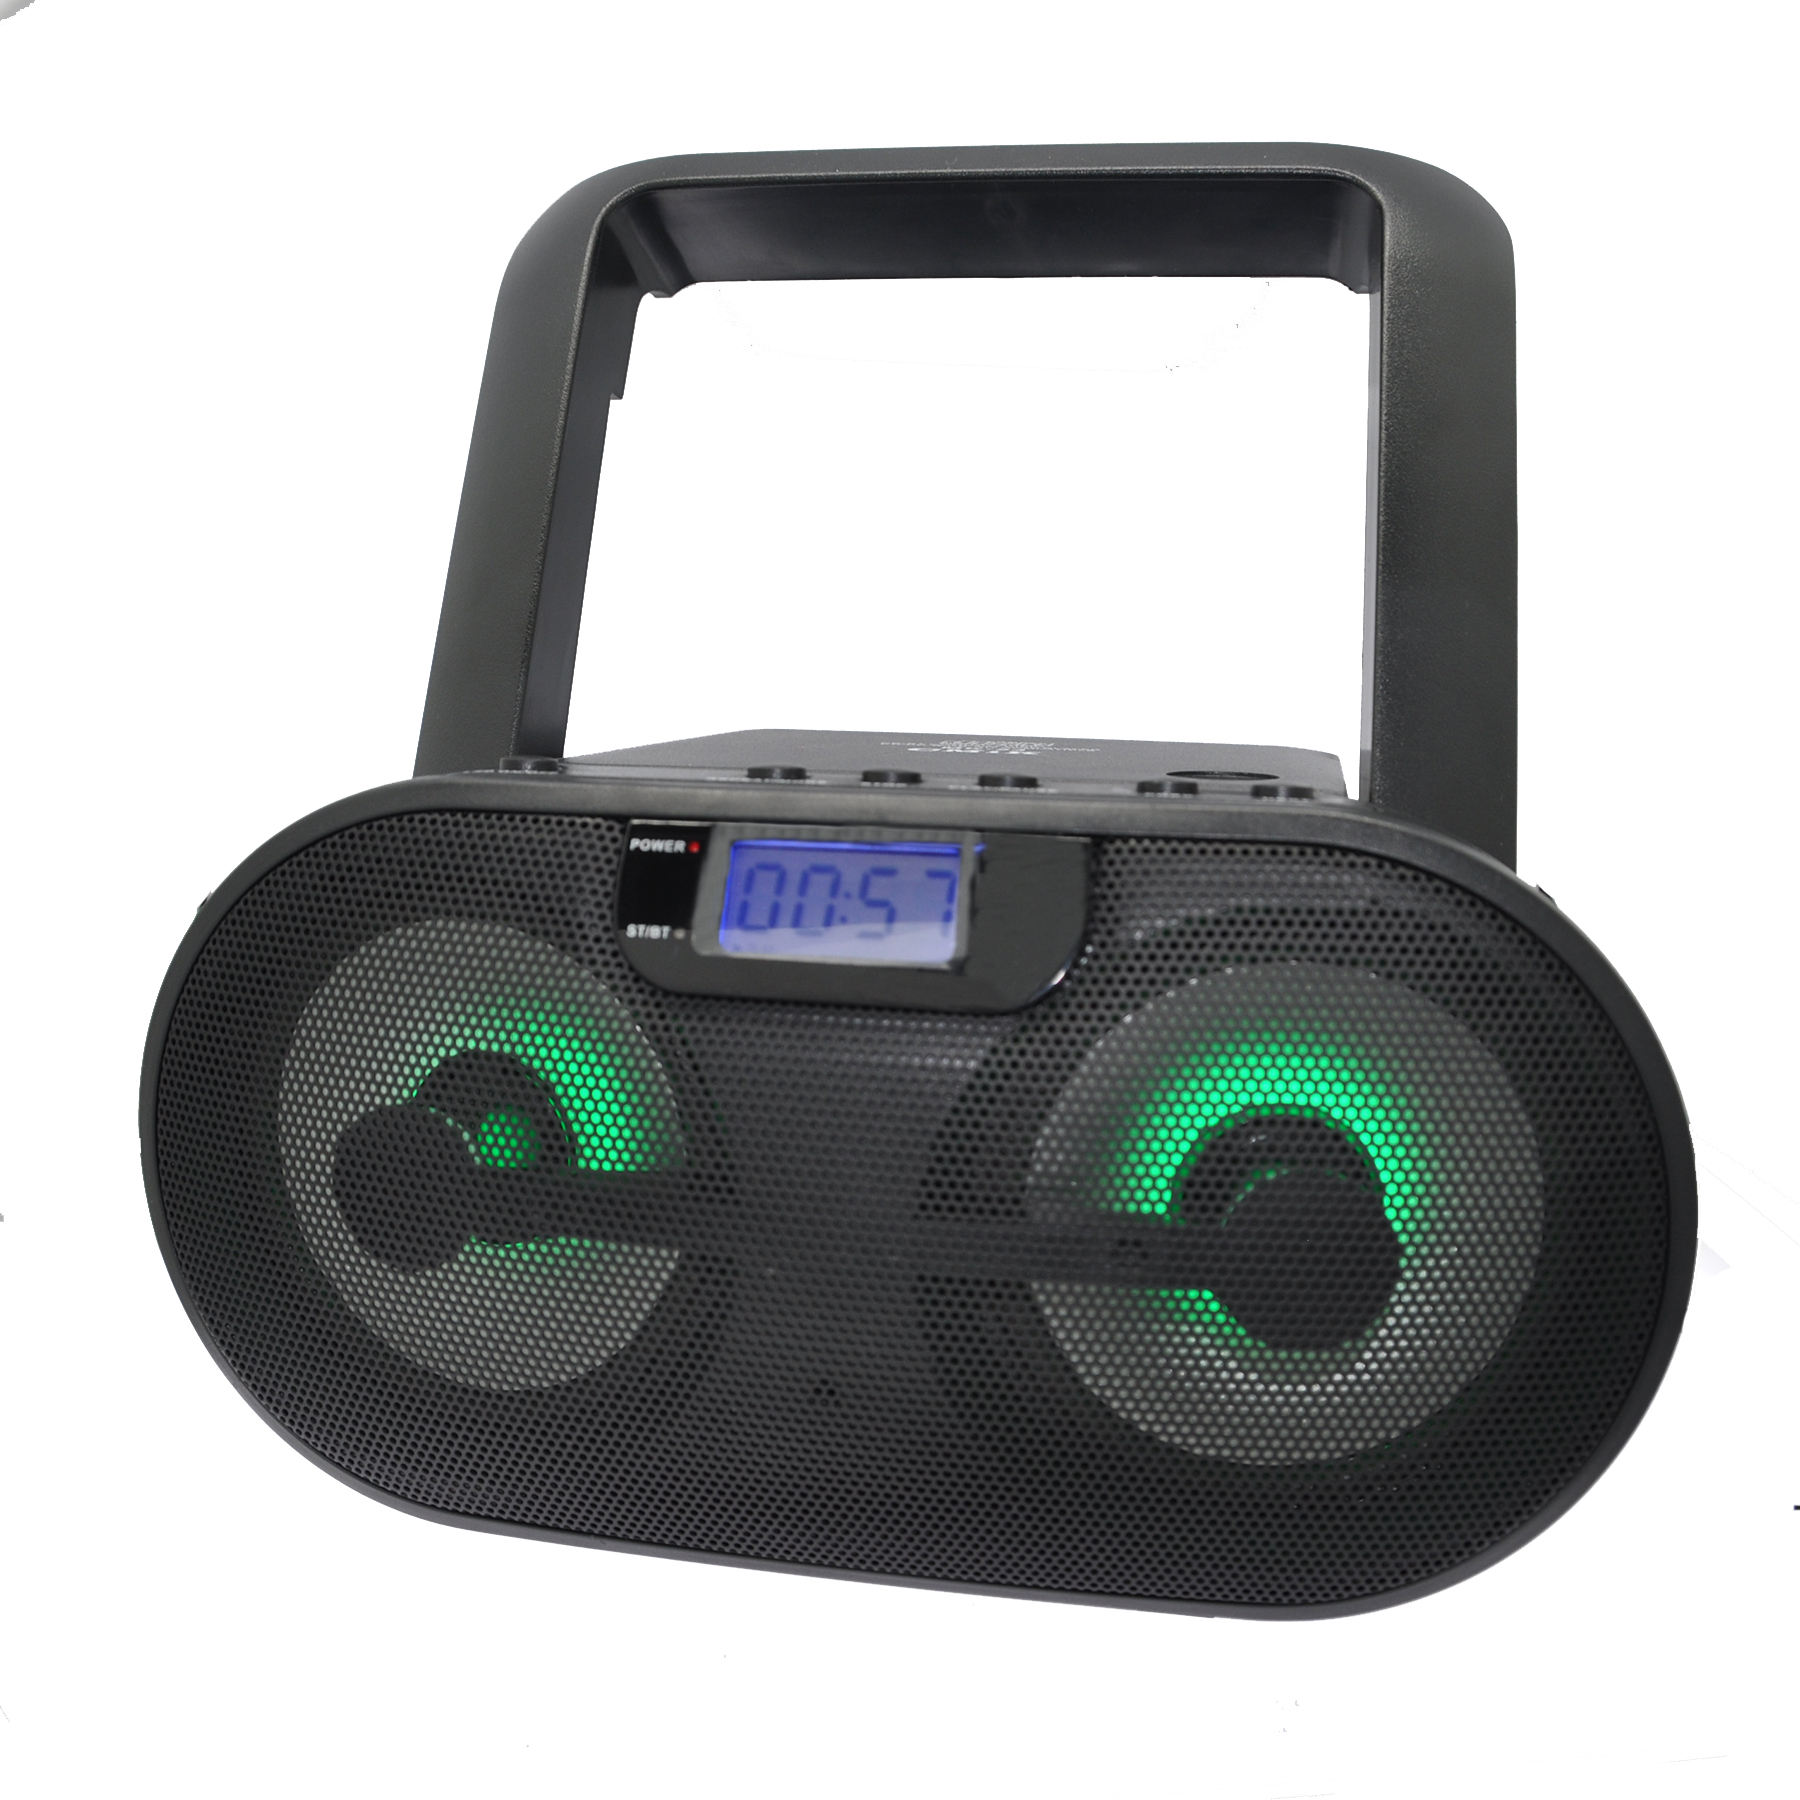 CMiK mk-24 DJ DVD WMA Portable crenk CD CD-R CD-RW boombox with color led light bluetooths usb tf card AM FM radio MP3 player